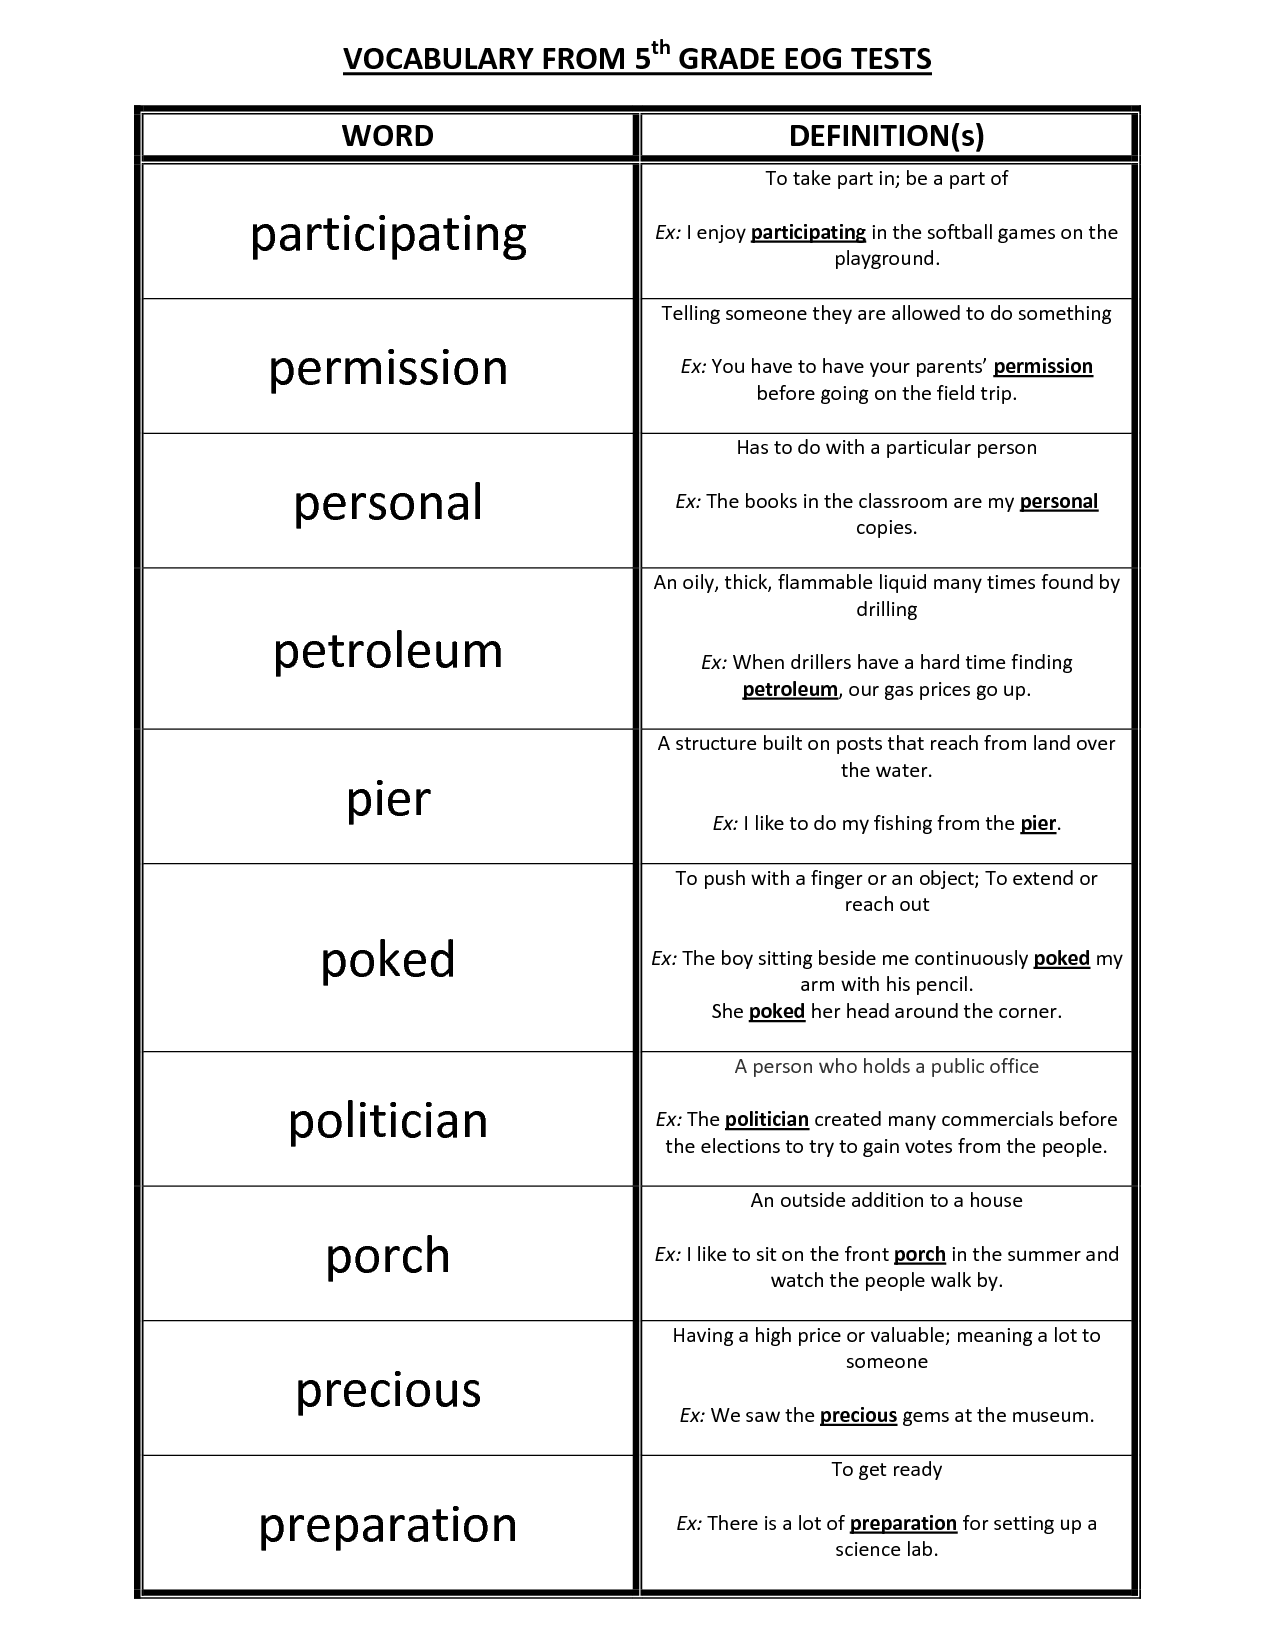 10th Grade Spelling Words And Definitions